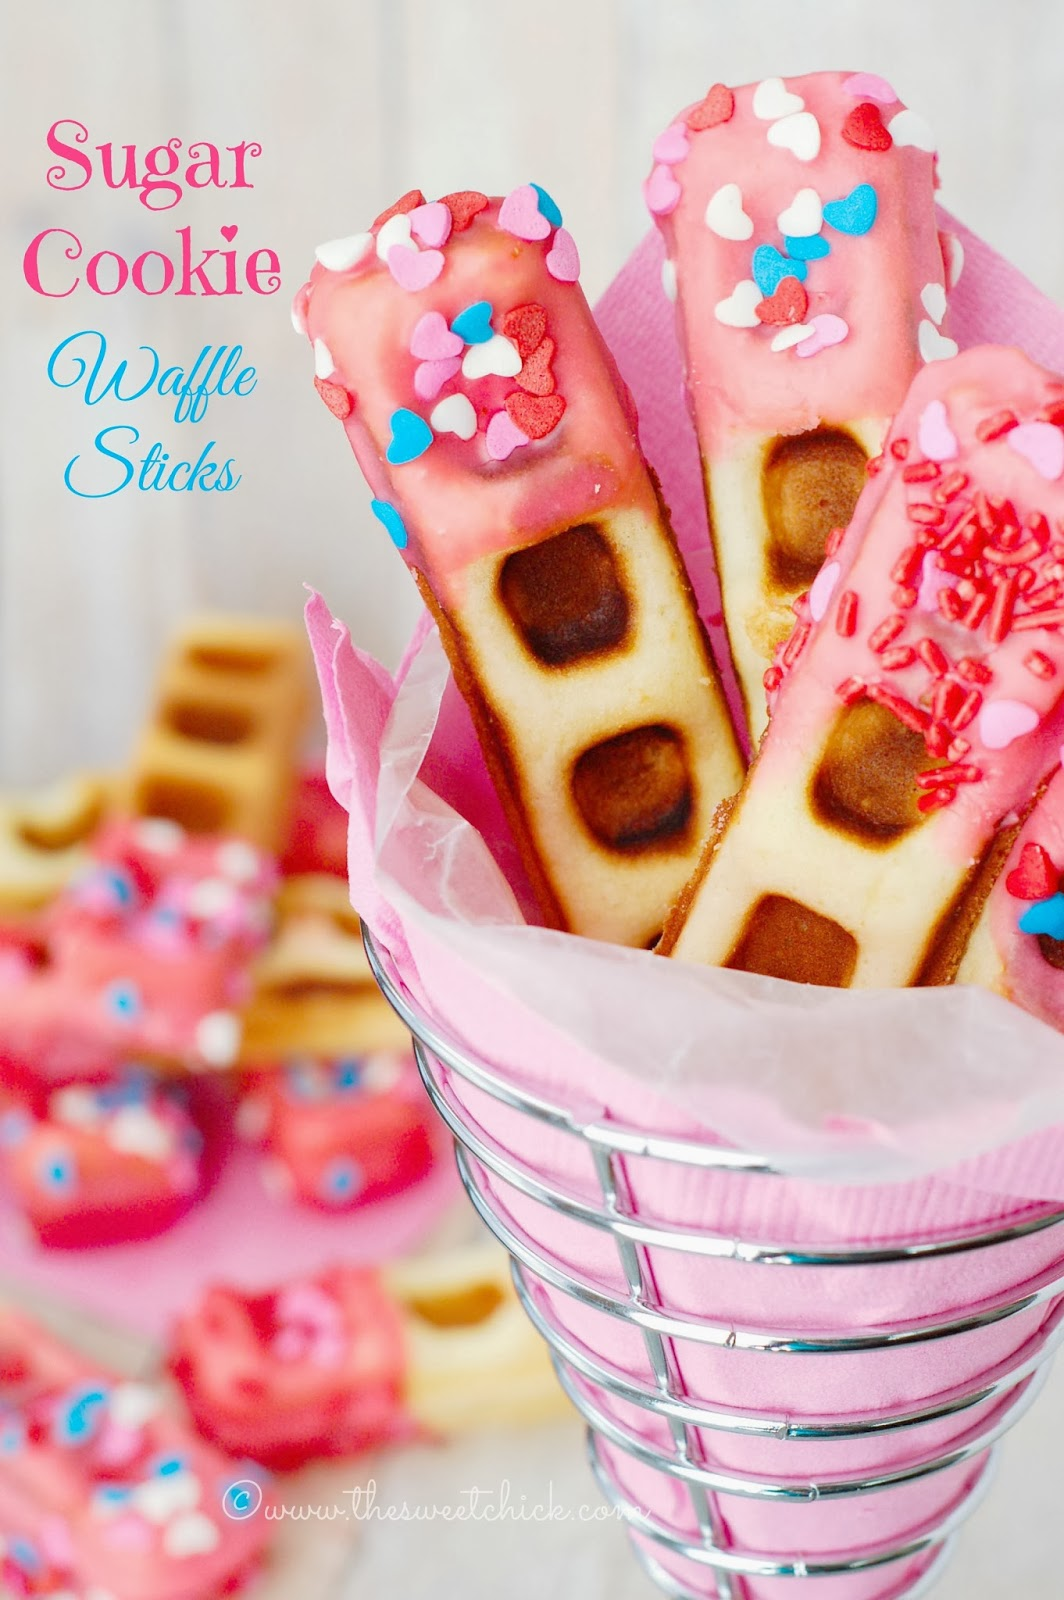 Sugar Cookie Waffle Sticks by The Sweet Chick